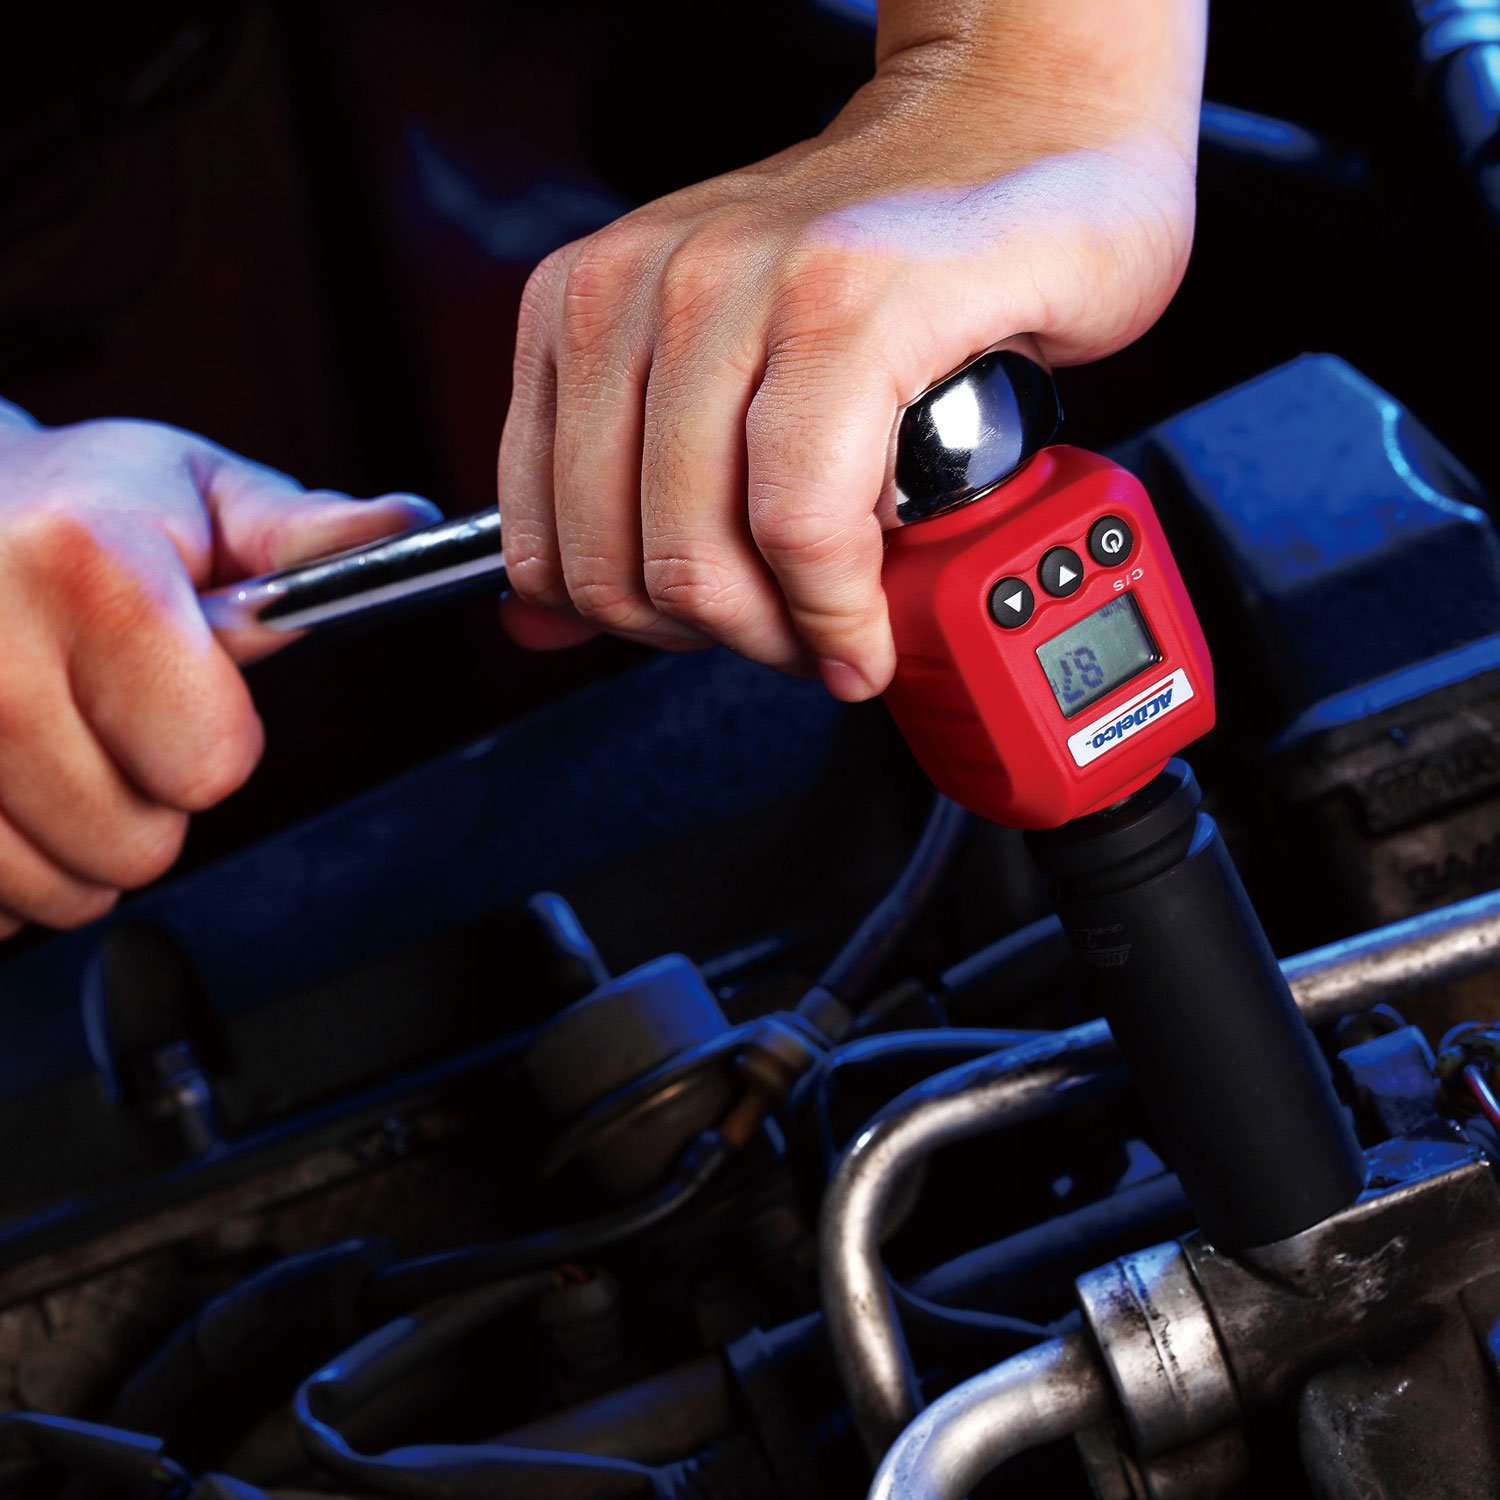 ACDelco 1/2'' Digital Torque Adapter (4-250 ft-lbs) with Audible/LED Alert ARM602-4A by ACDelco Tools (Image #5)